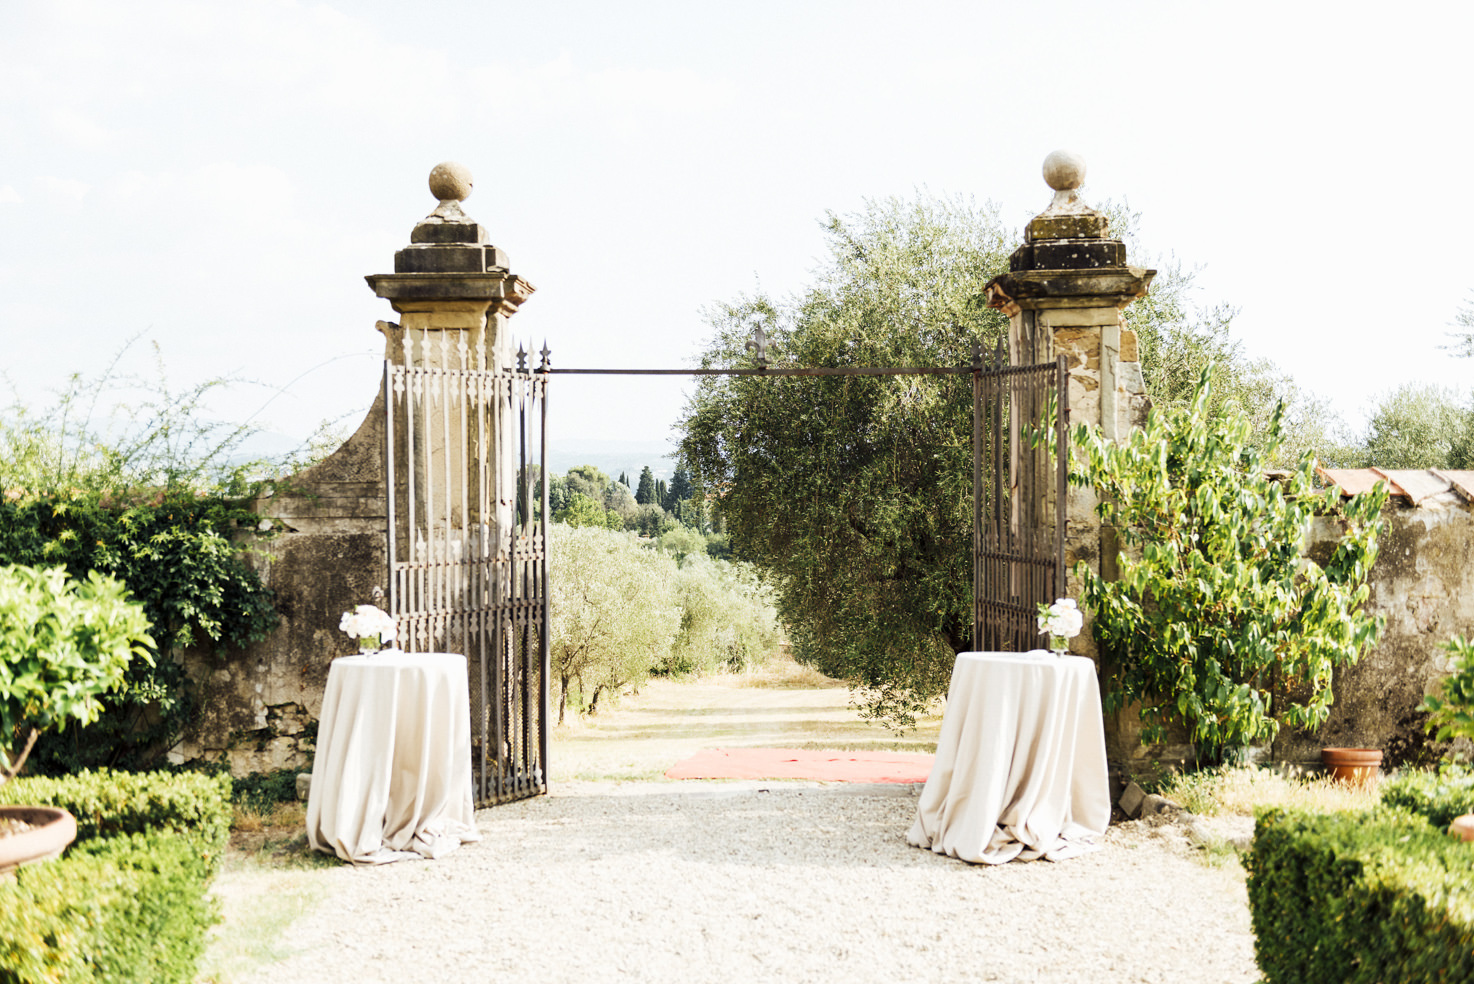 Decoration for the entrance of the Villa